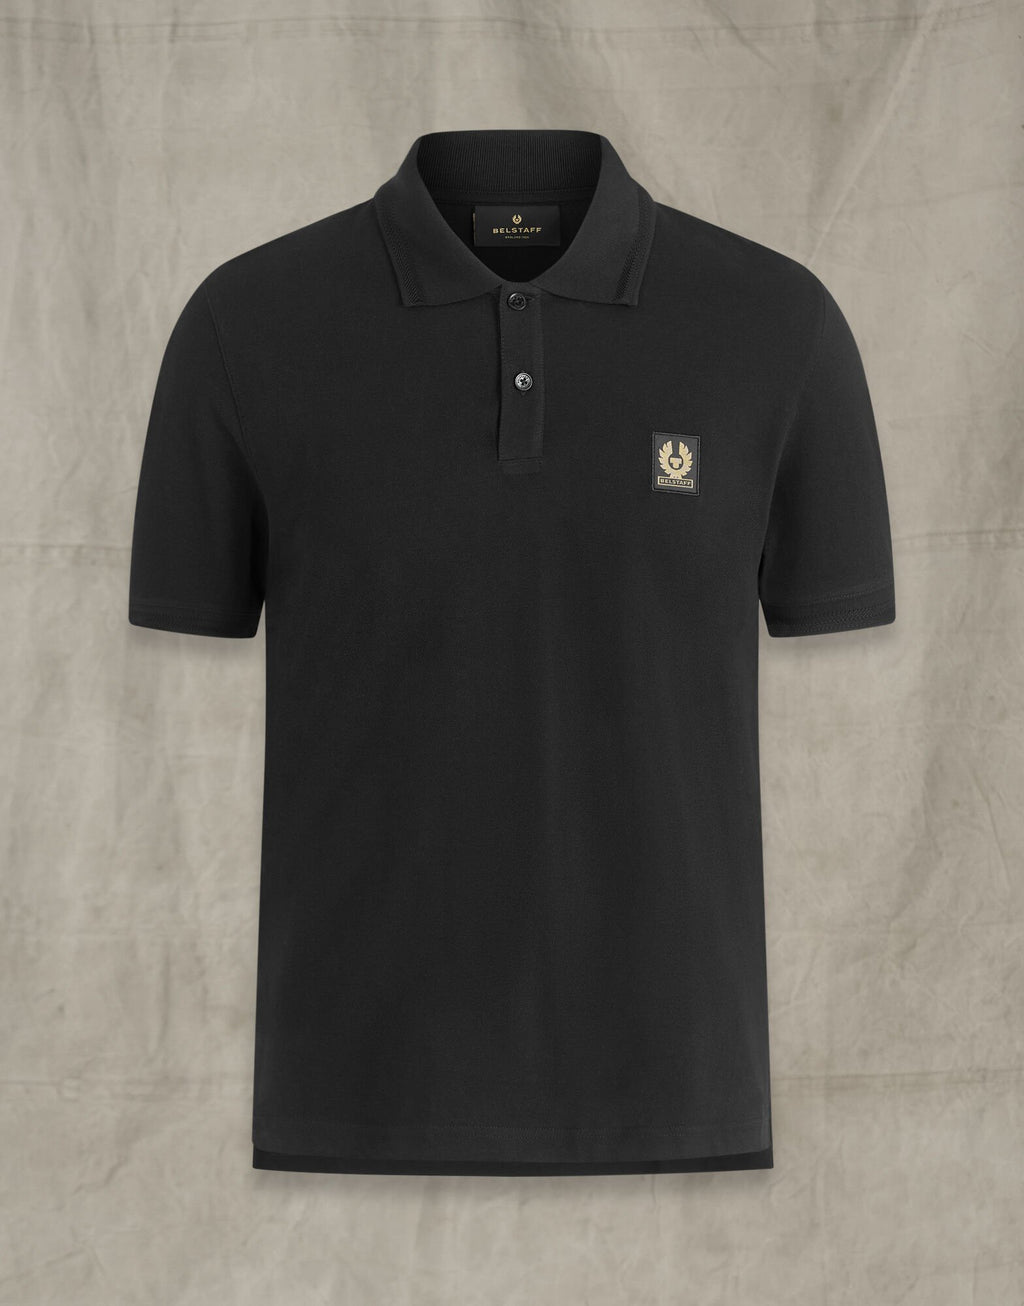 Belstaff Black Short Sleeve Polo